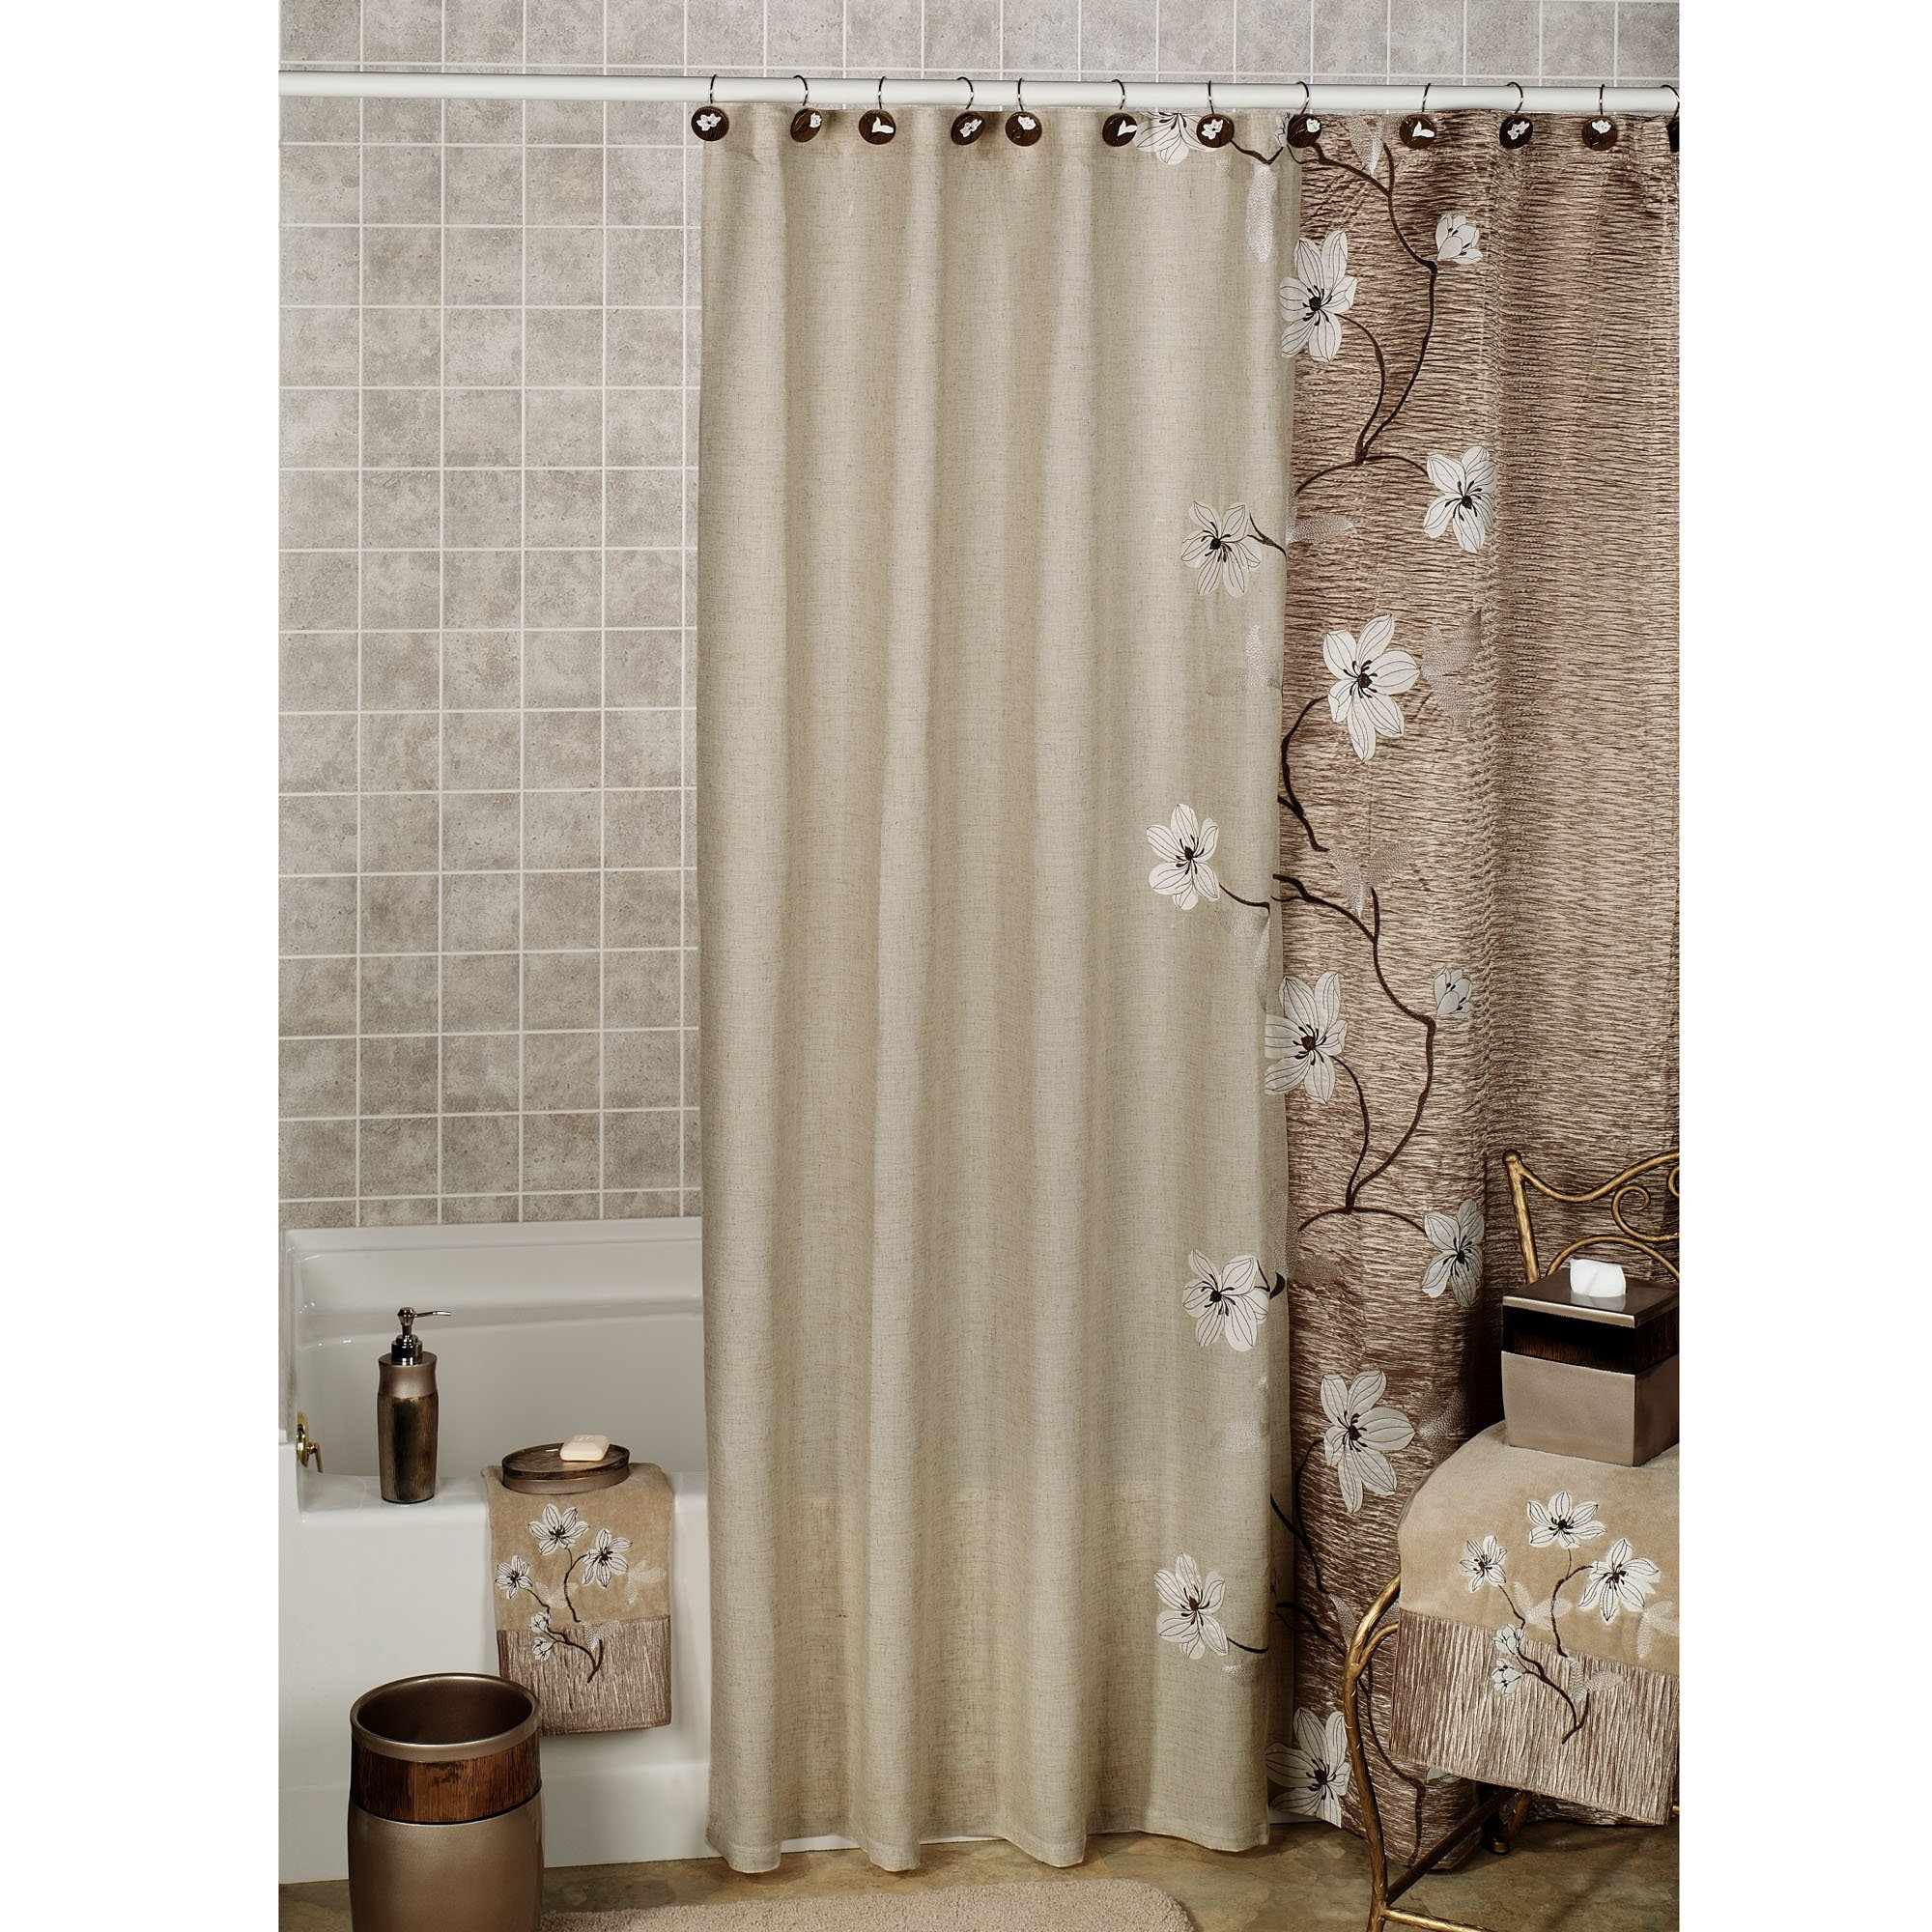 Bathroom window curtains and shower curtain sets bathroom design ideas Bathroom valances for windows